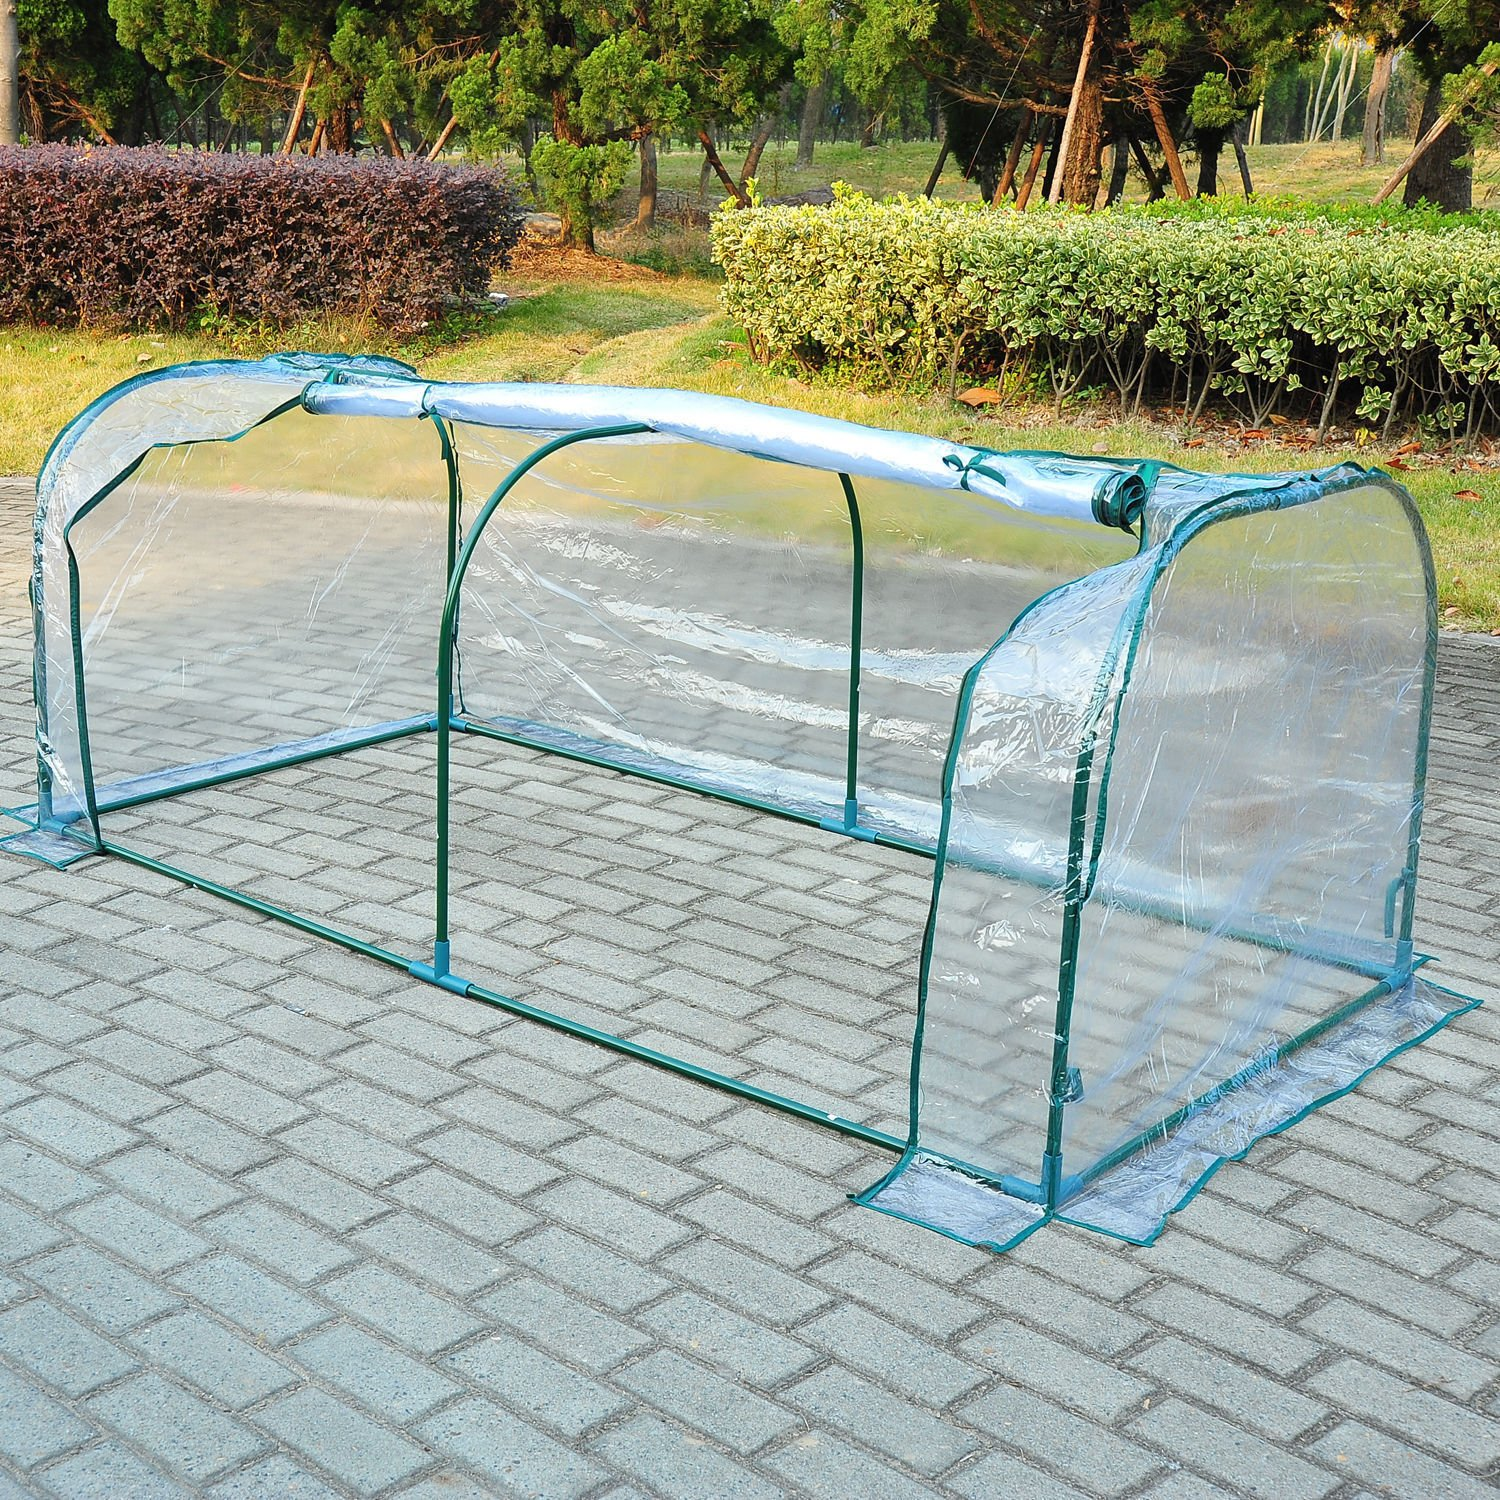 totoshop 7'x3'x3' Greenhouse Mini Portable Gardening Flower Plants Yard Hot House Tunnel